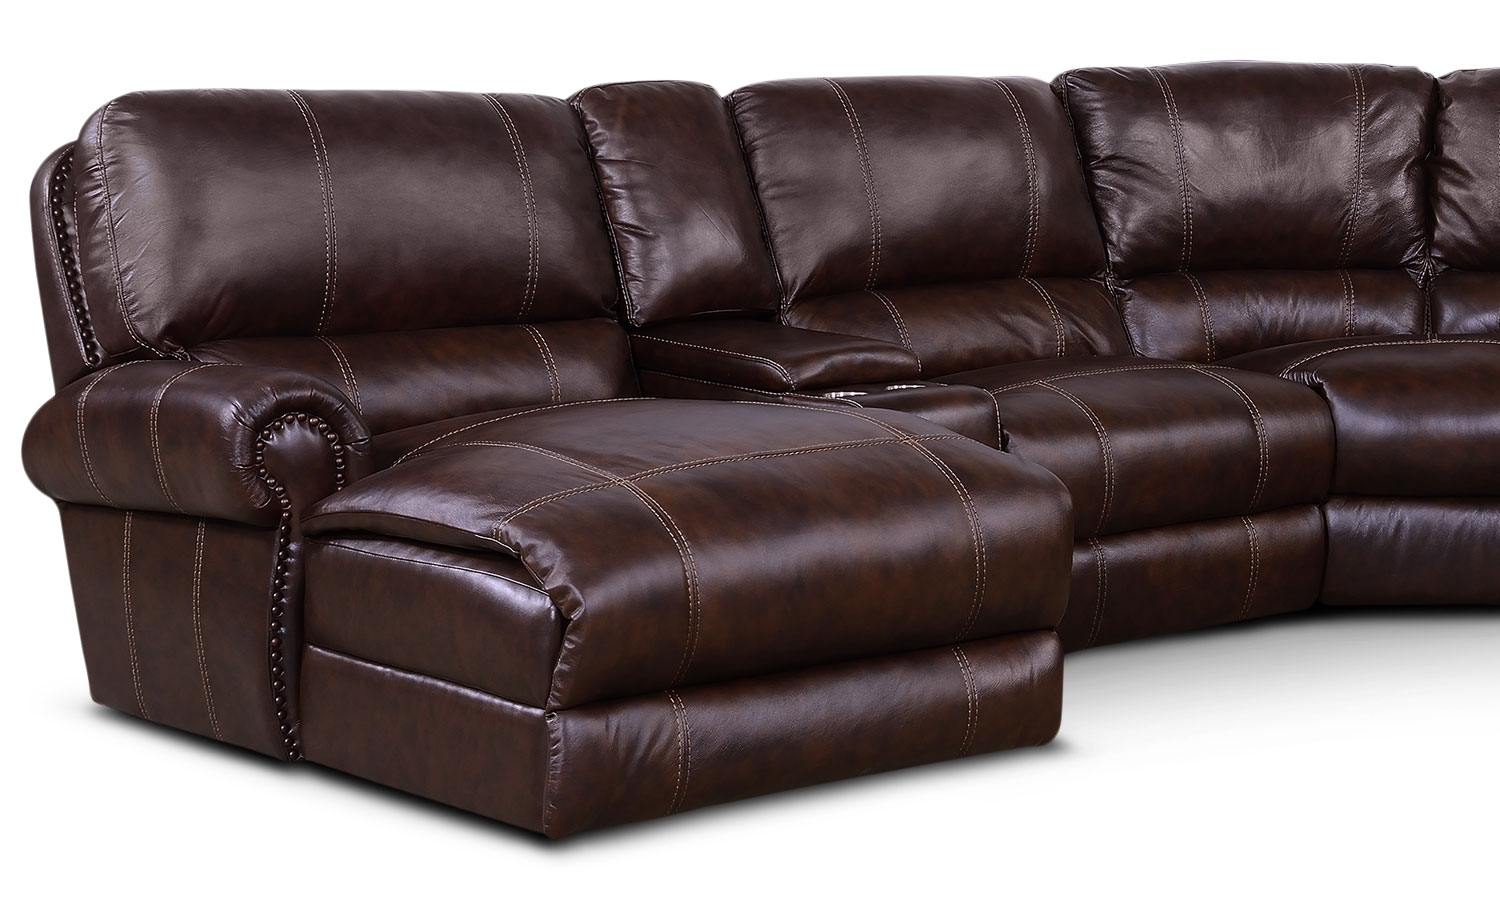 Dartmouth 6-Piece Power Reclining Sectional W/ Left-Facing Chaise throughout Norfolk Chocolate 3 Piece Sectionals With Raf Chaise (Image 10 of 30)